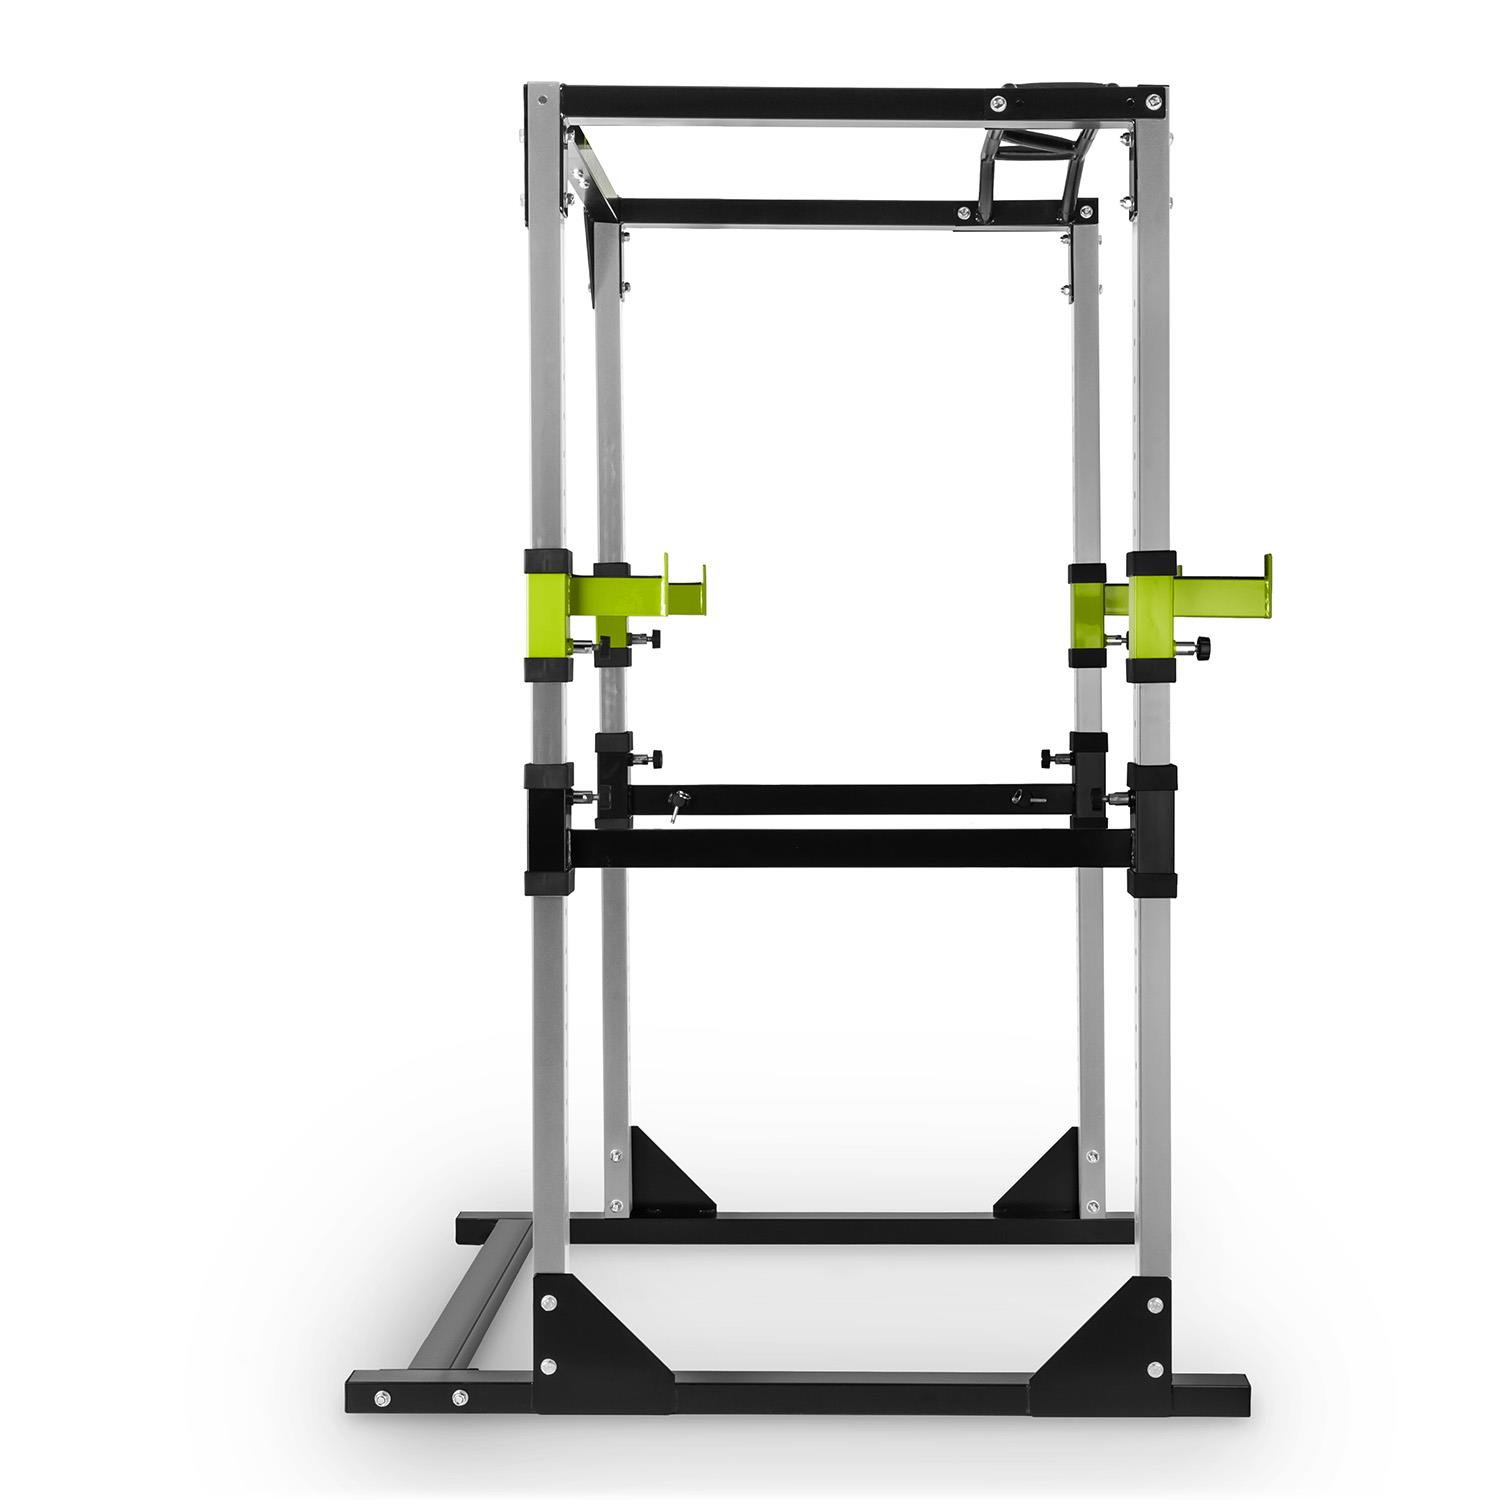 Steel Lifting : Power steel rack square weight lifting multi gym home pull